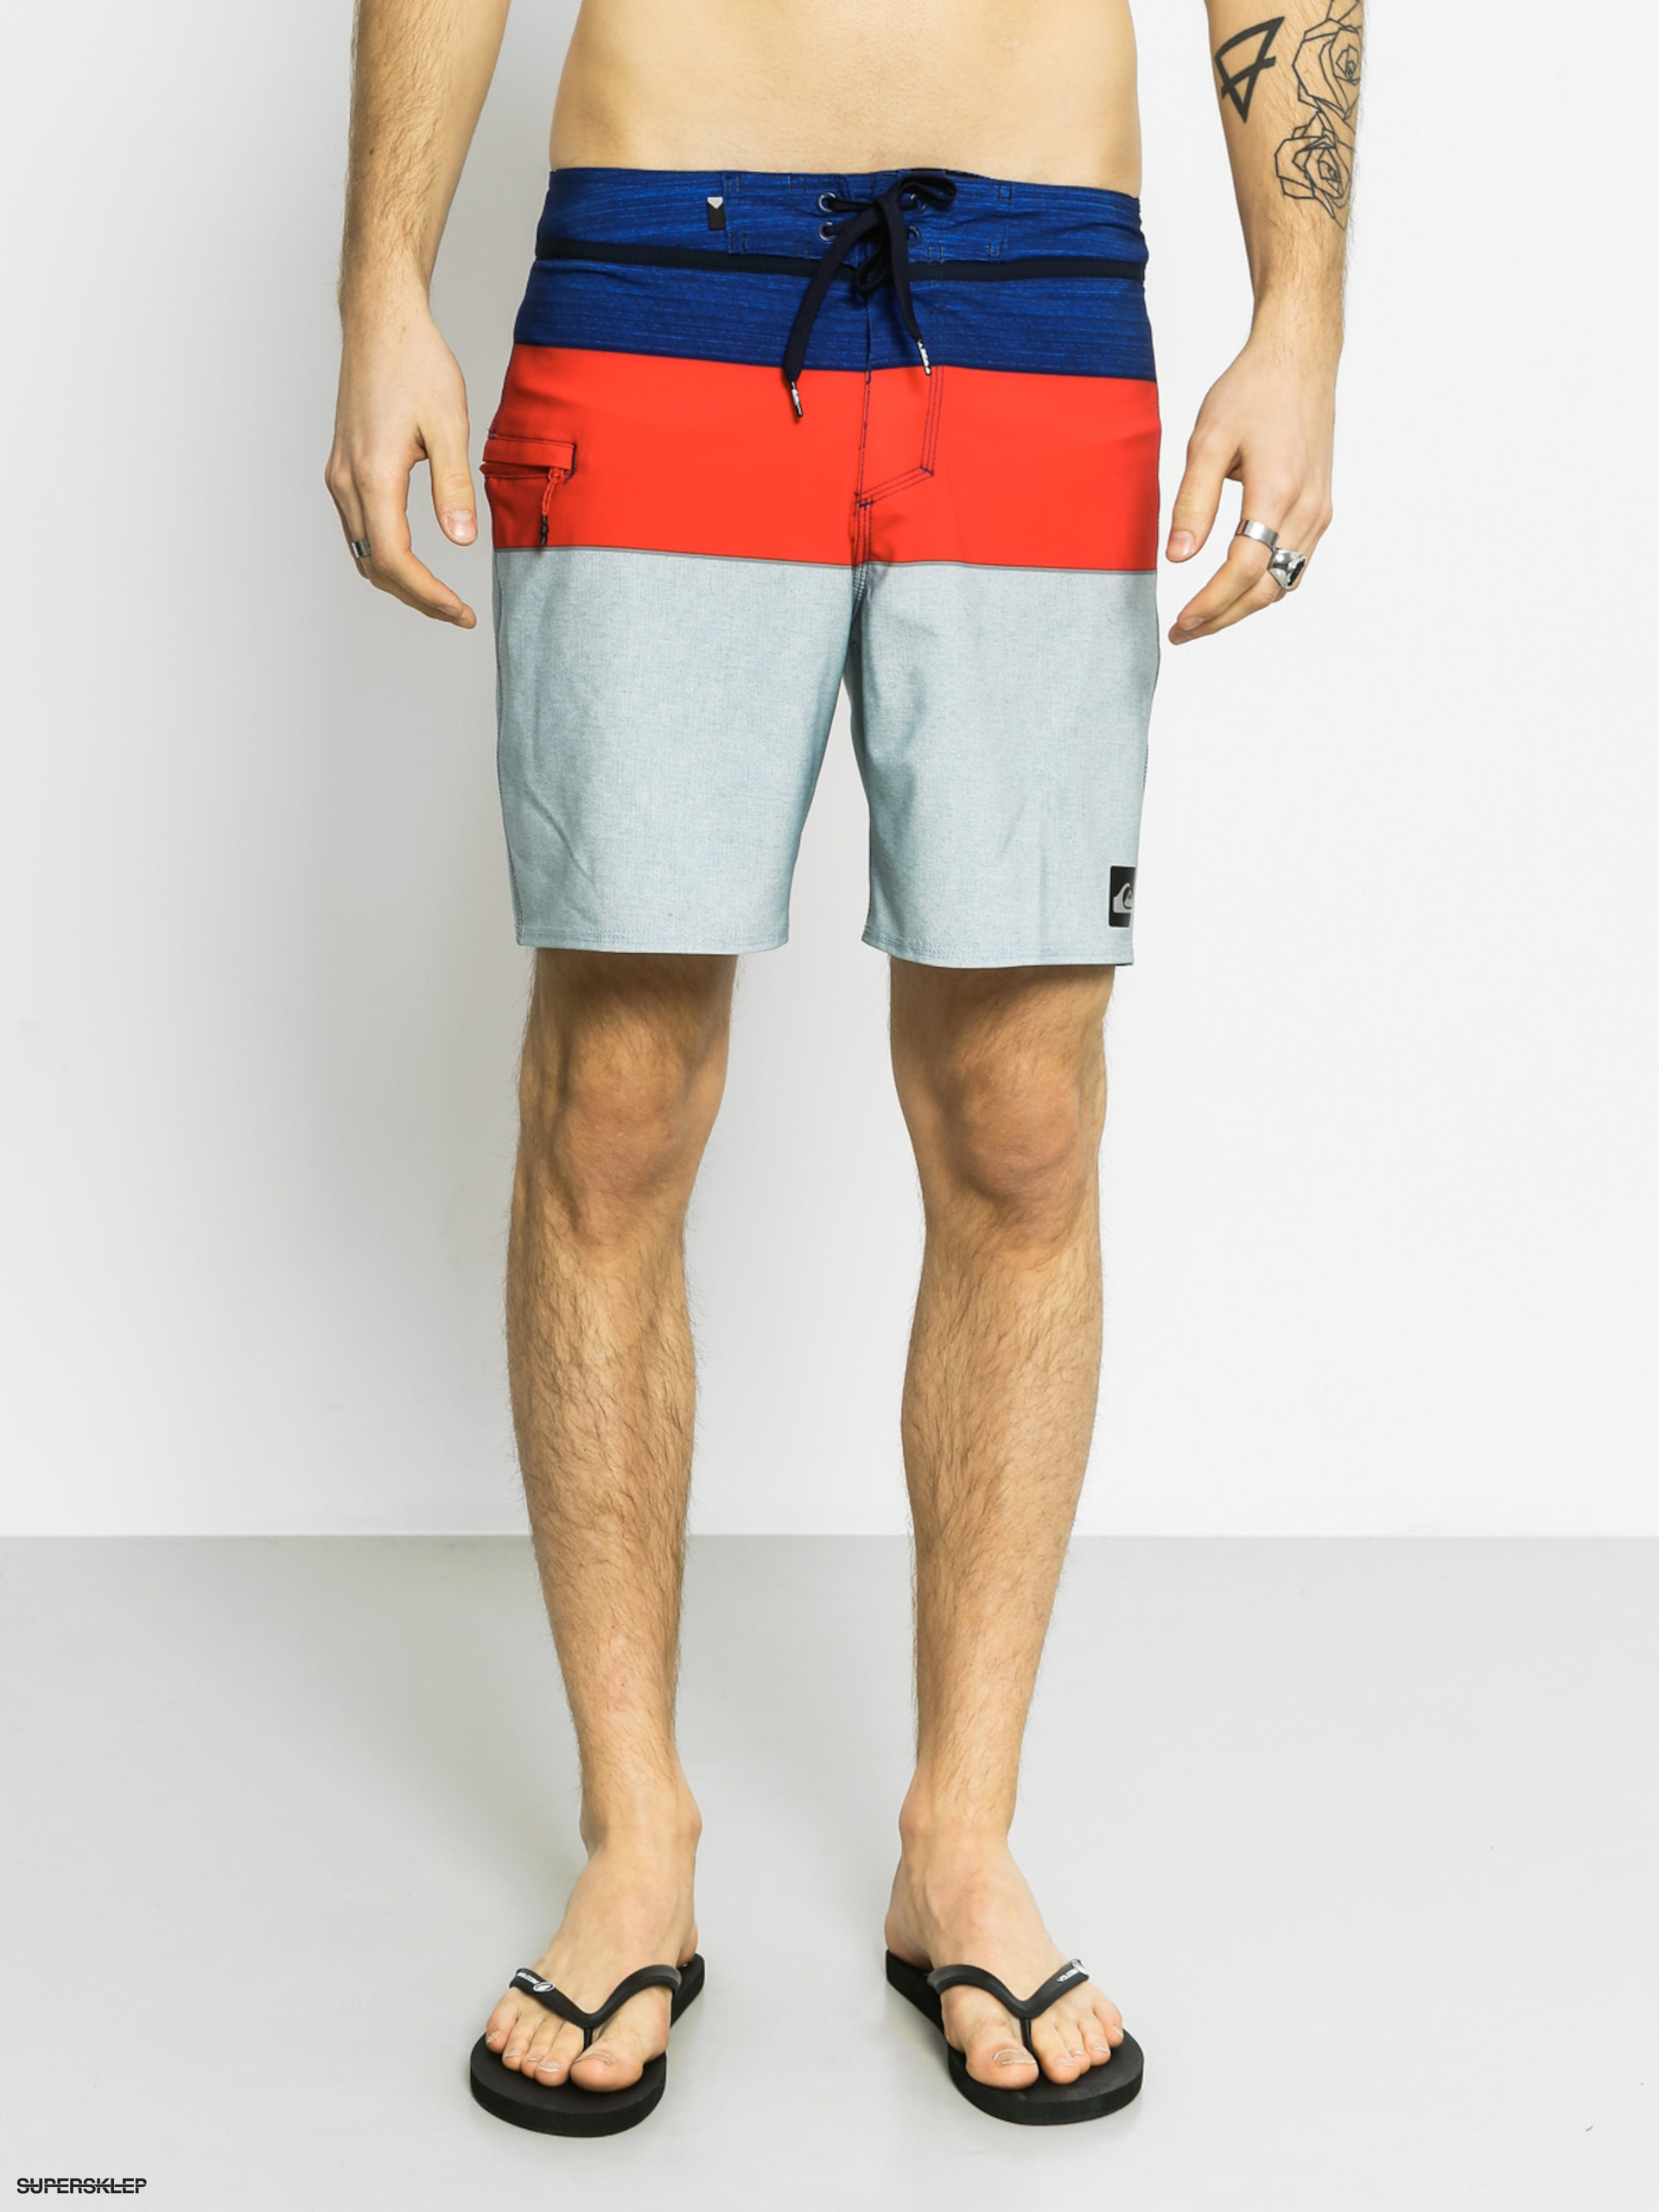 Plážové kraťasy Quiksilver Everyd Block Boardshort (navy/red/light blue)